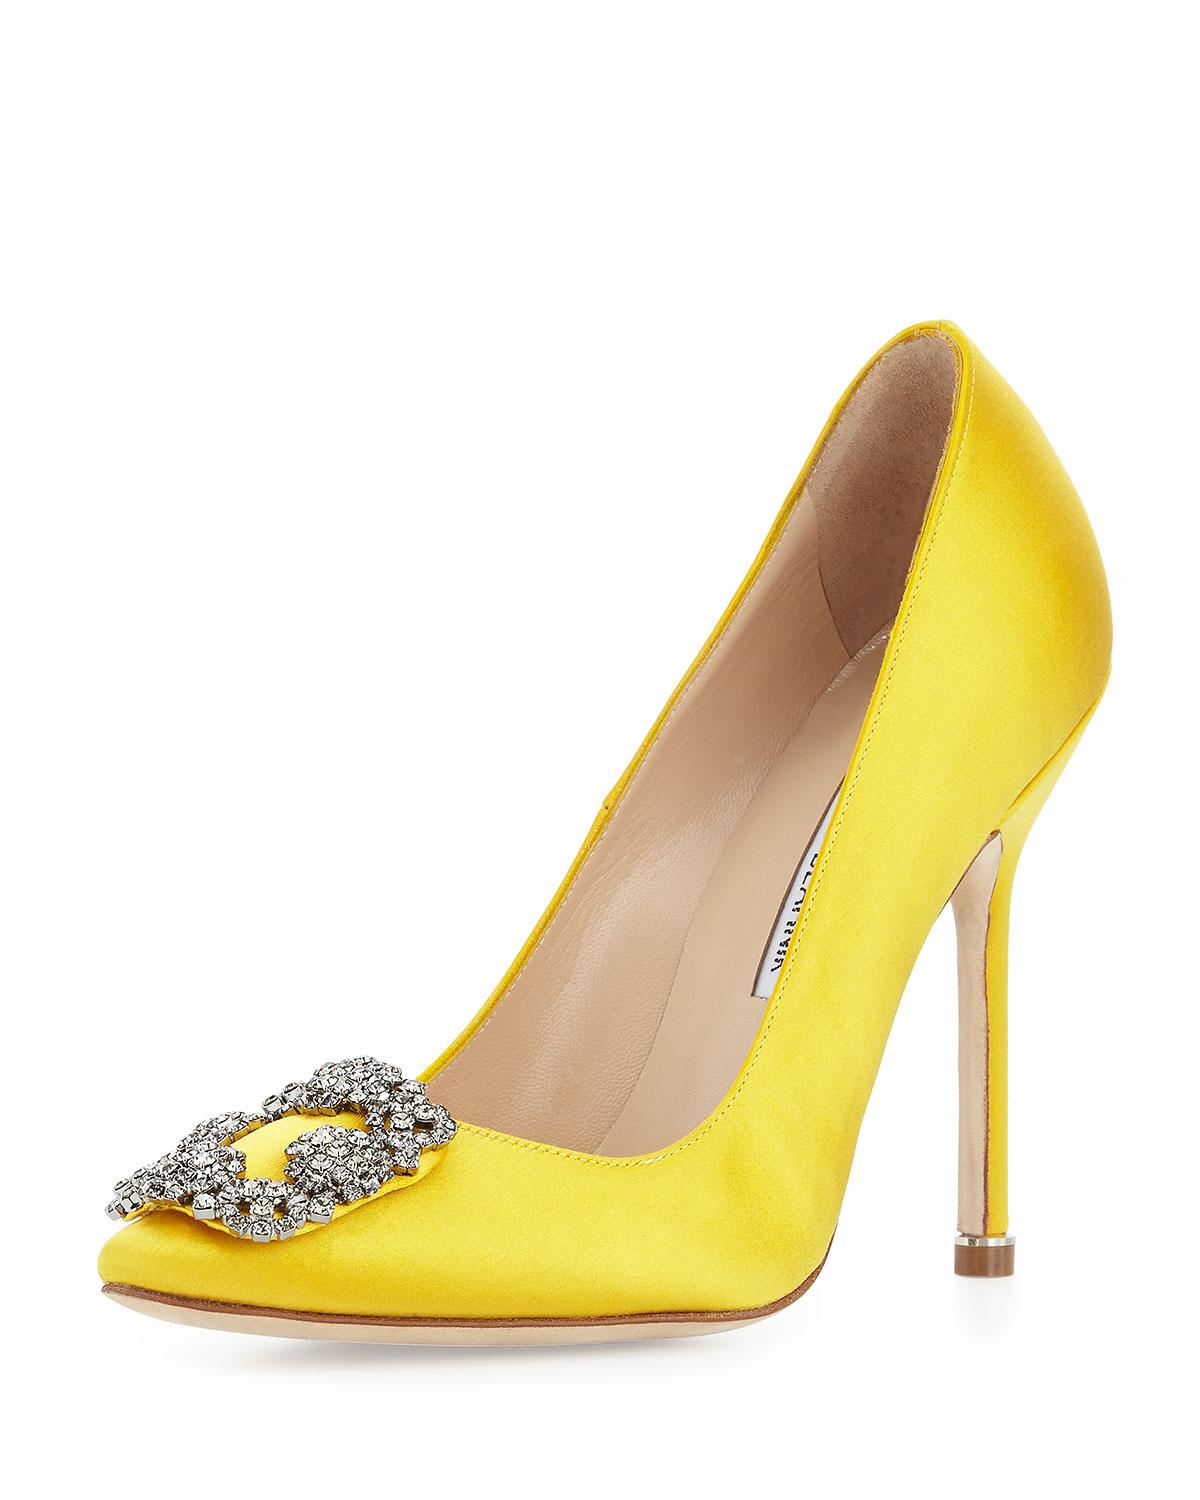 Lyst manolo blahnik hangisi satin crystal toe pump in yellow for Shoes by manolo blahnik